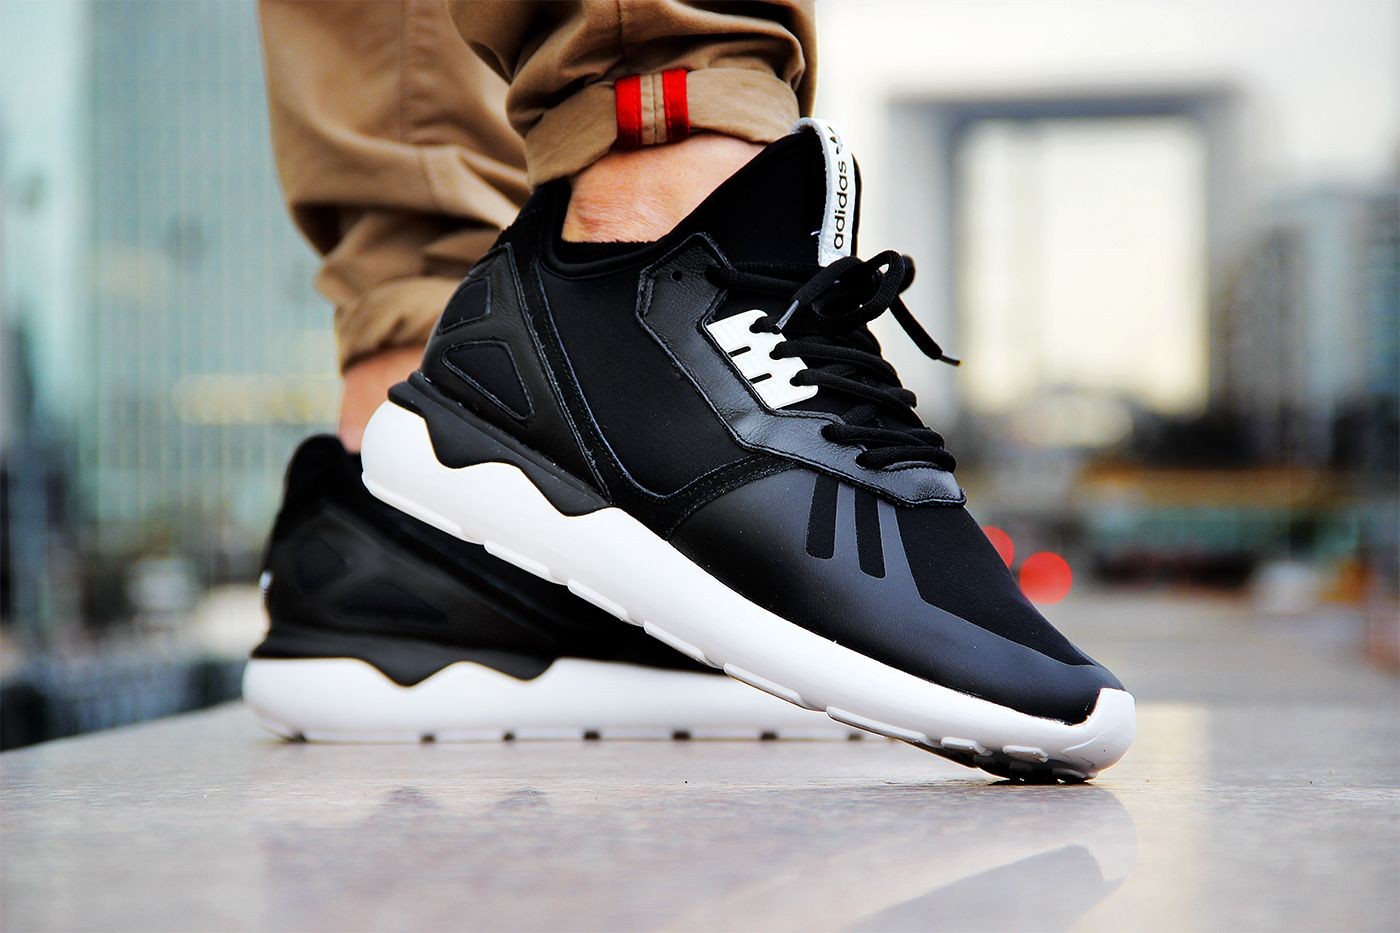 Adidas Tubular UNCGD Shoes Black adidas MLT